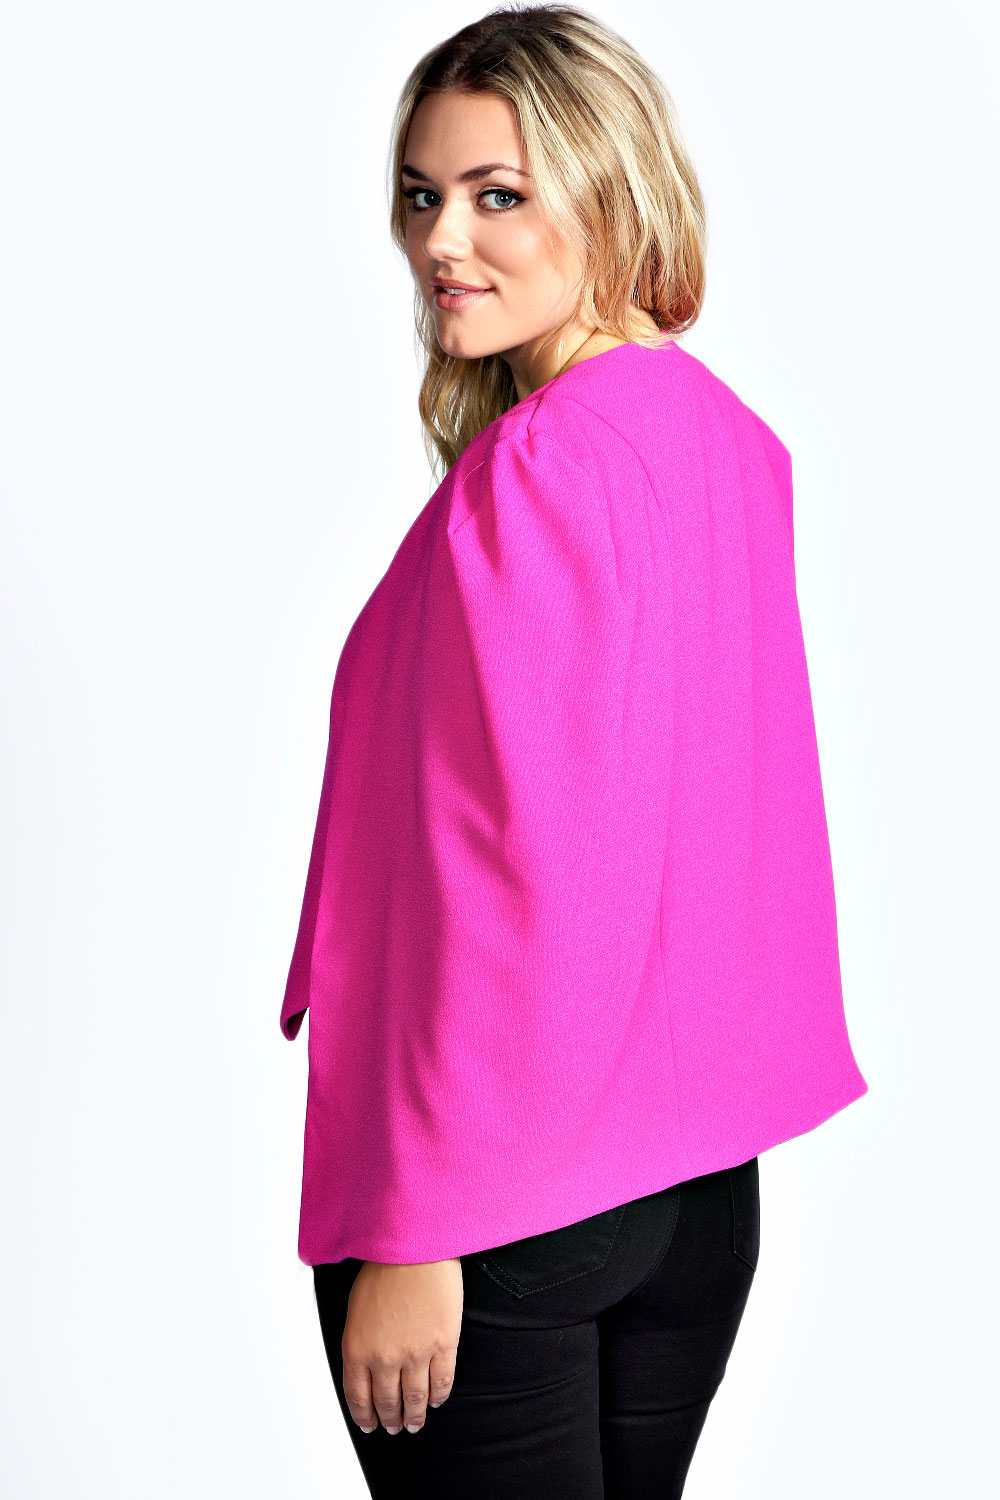 Boohoo Womens Ladies Plus Size Darcie Woven Cape Jacket in Pink | eBay